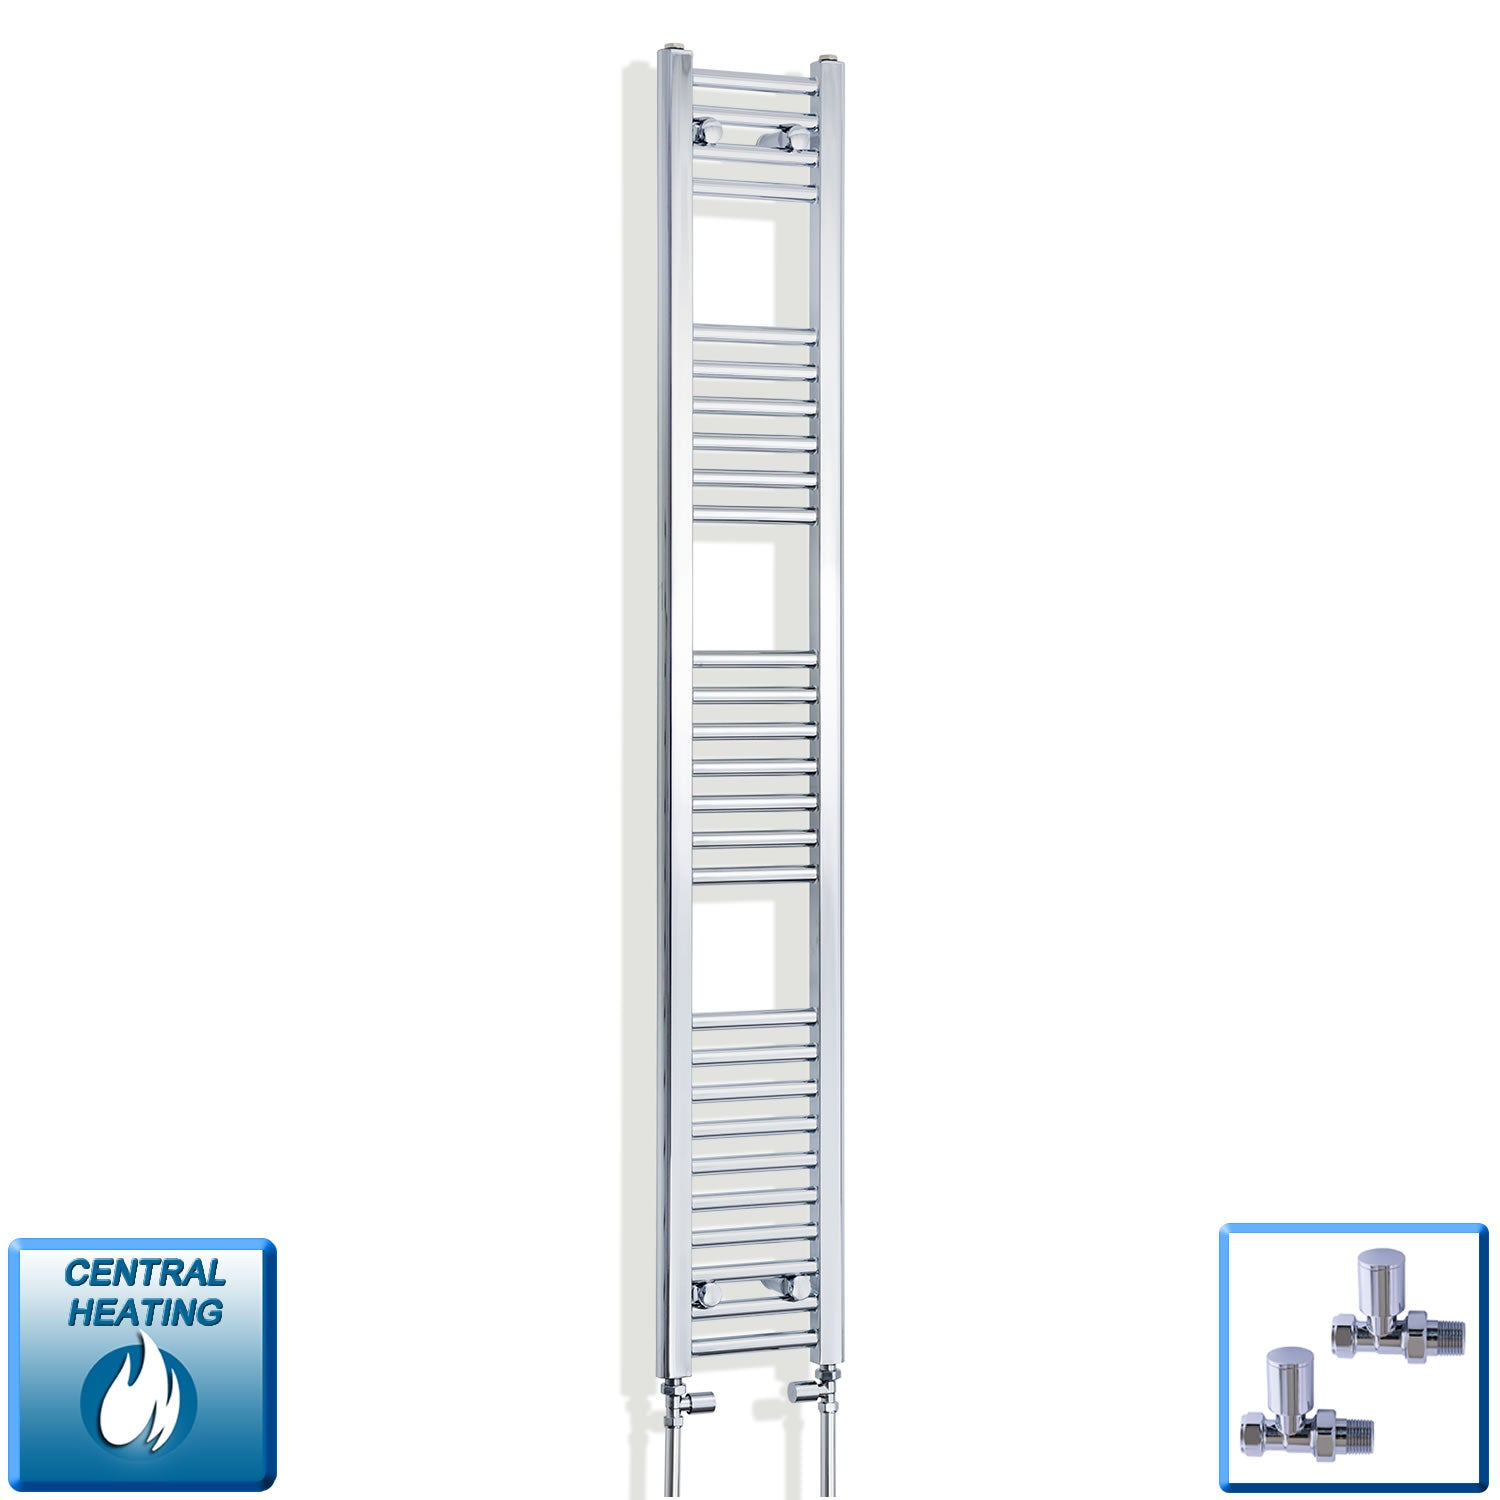 200mm Wide 1600mm High Chrome Towel Rail Radiator With Straight Valve